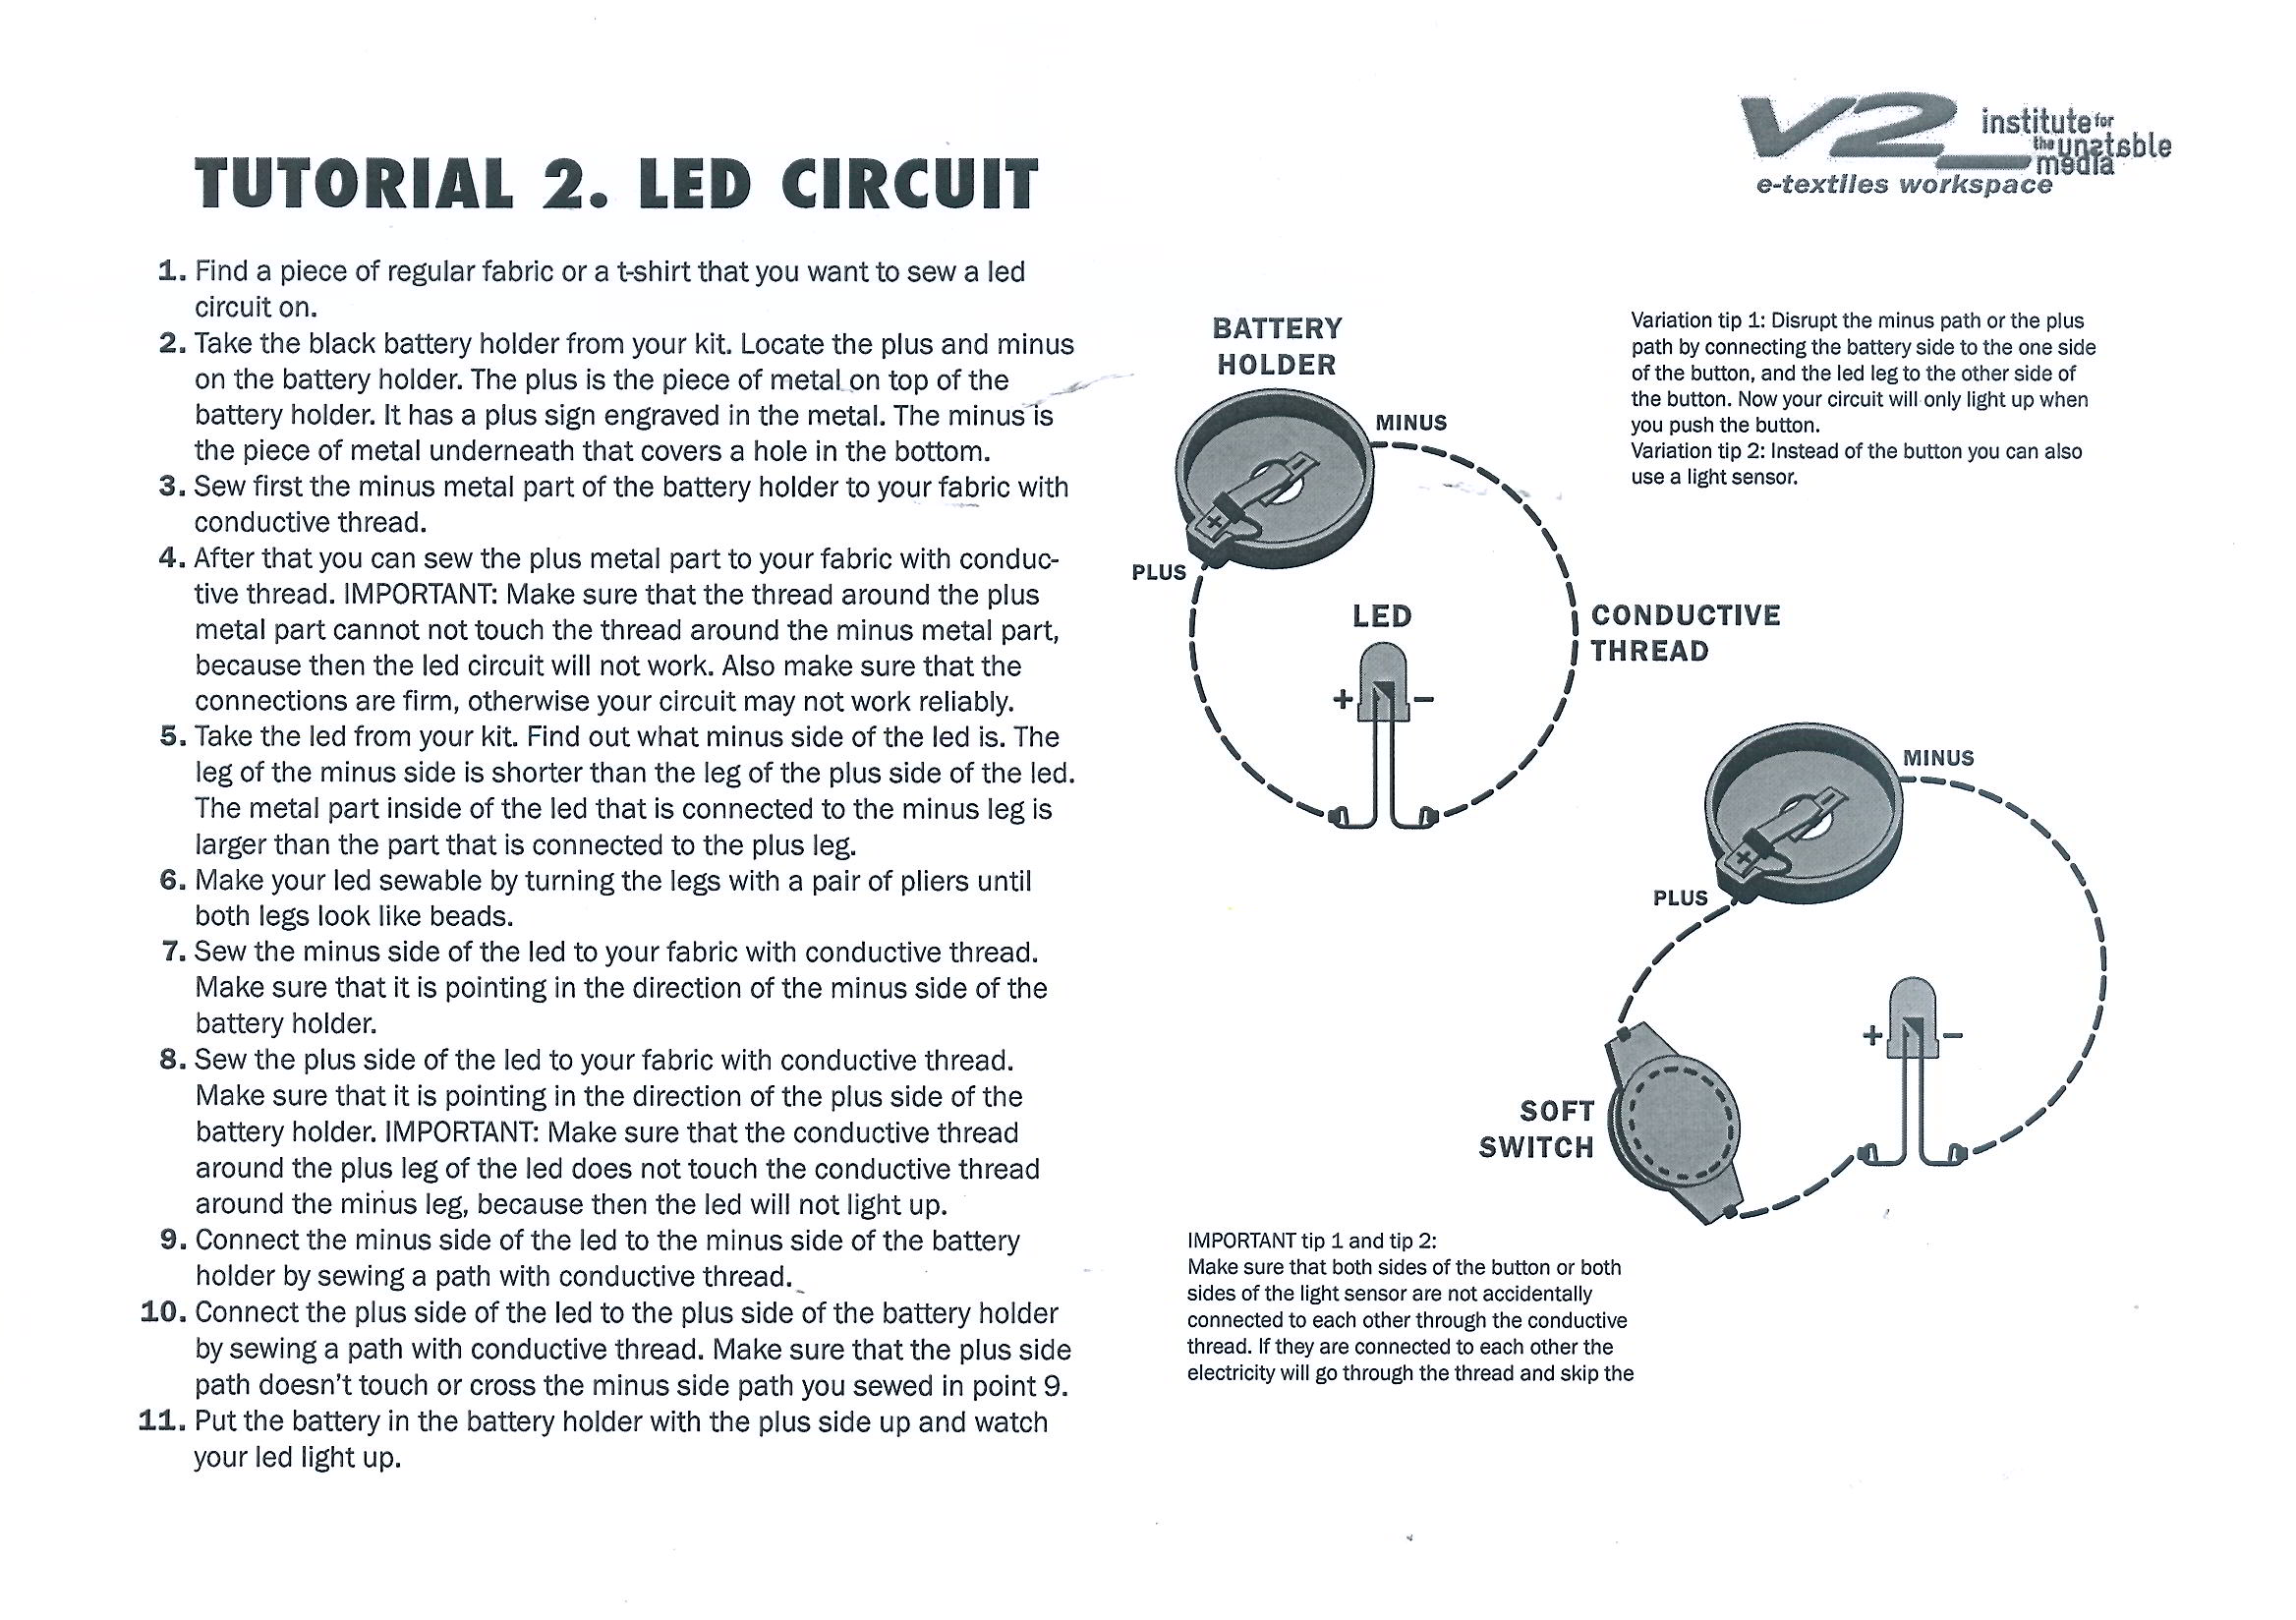 Tutorial Led Circuit V2 Lab For The Unstable Media Diagram